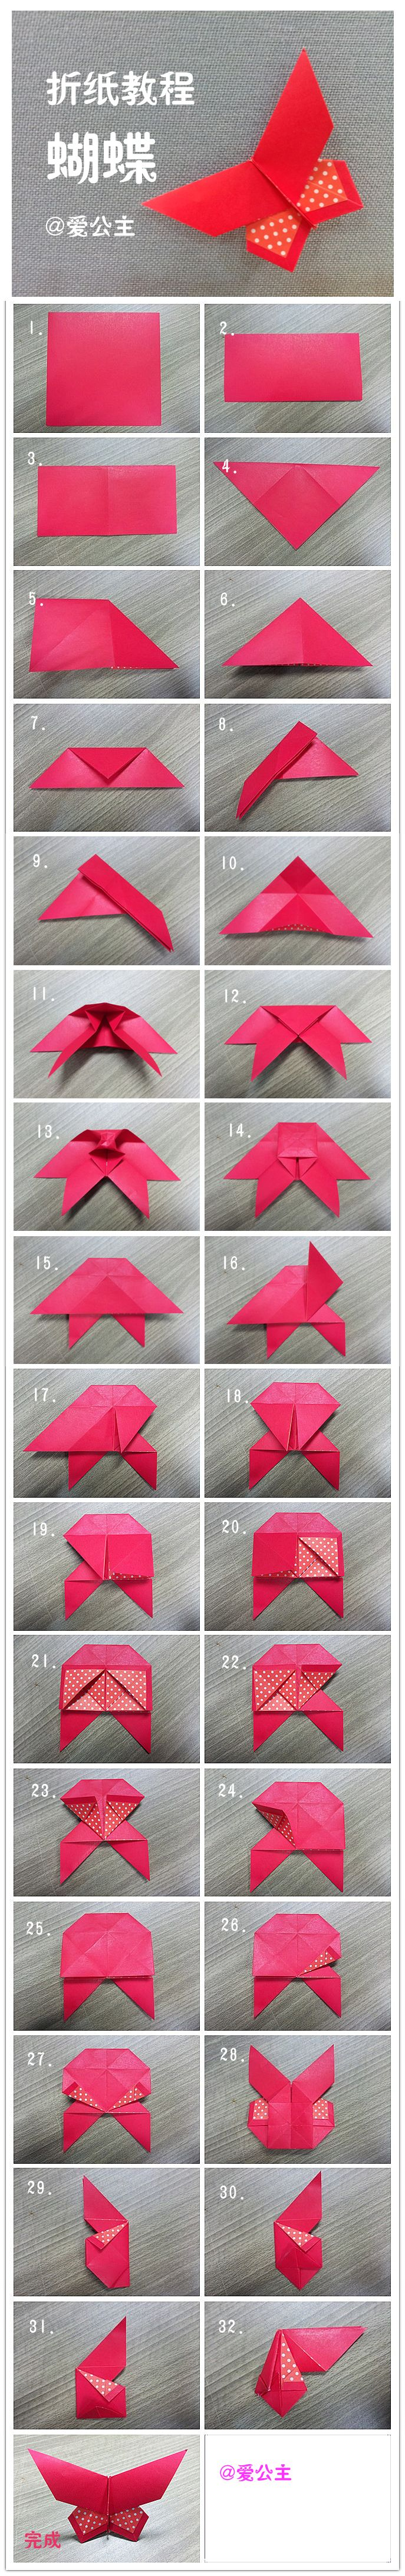 Origami butterfly - some complicated steps